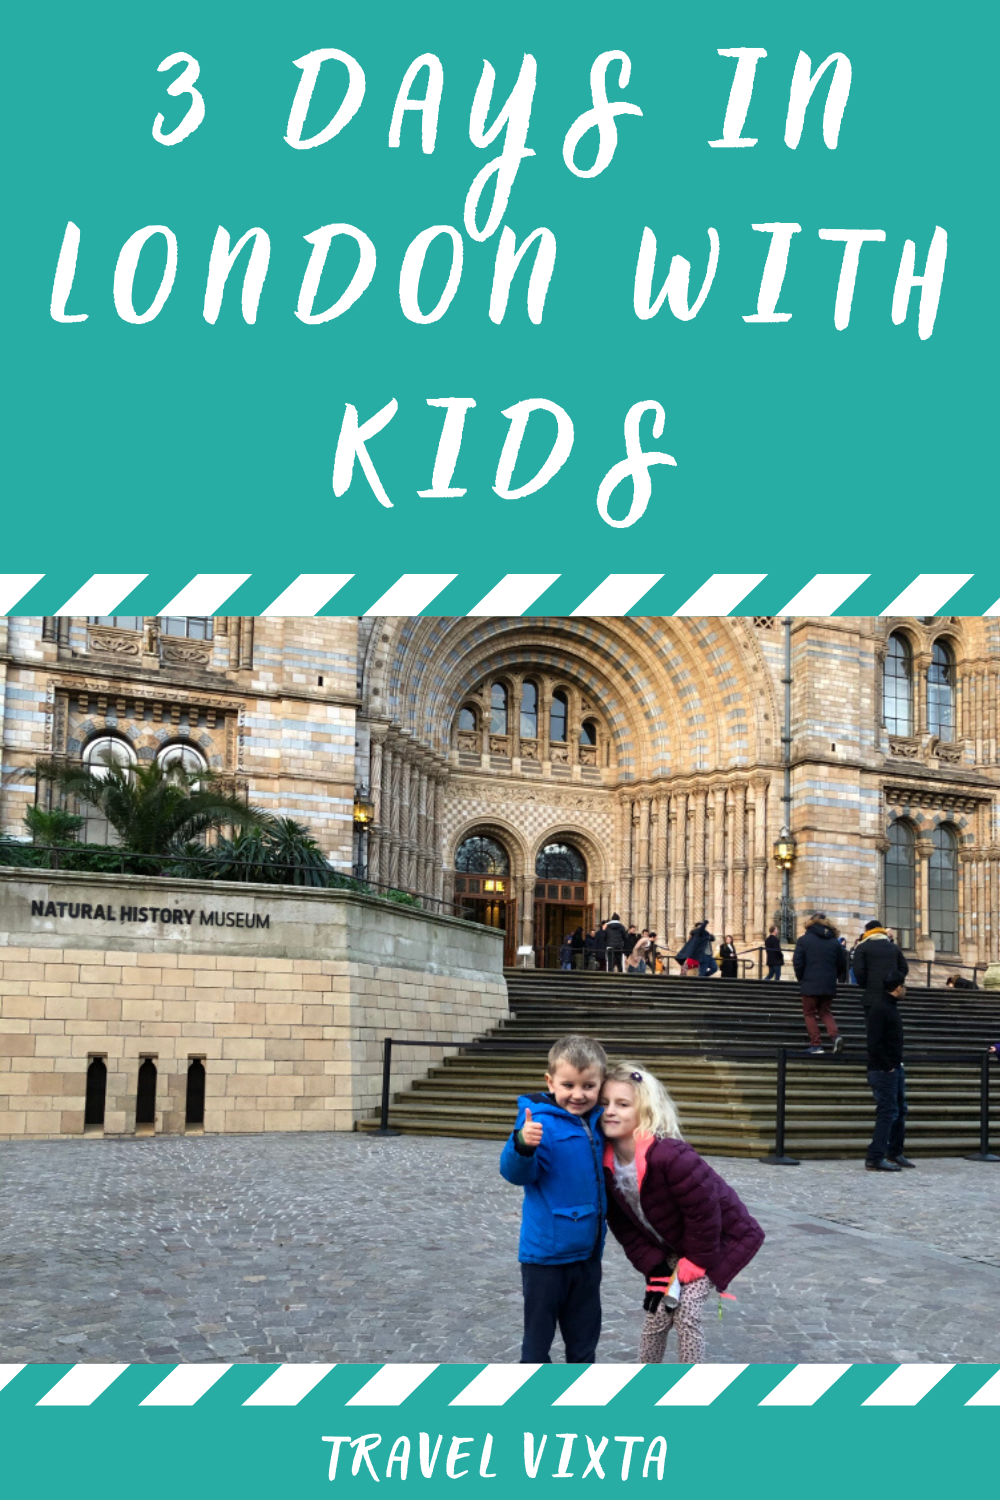 One Day in London: Seeing the Best of London in Day